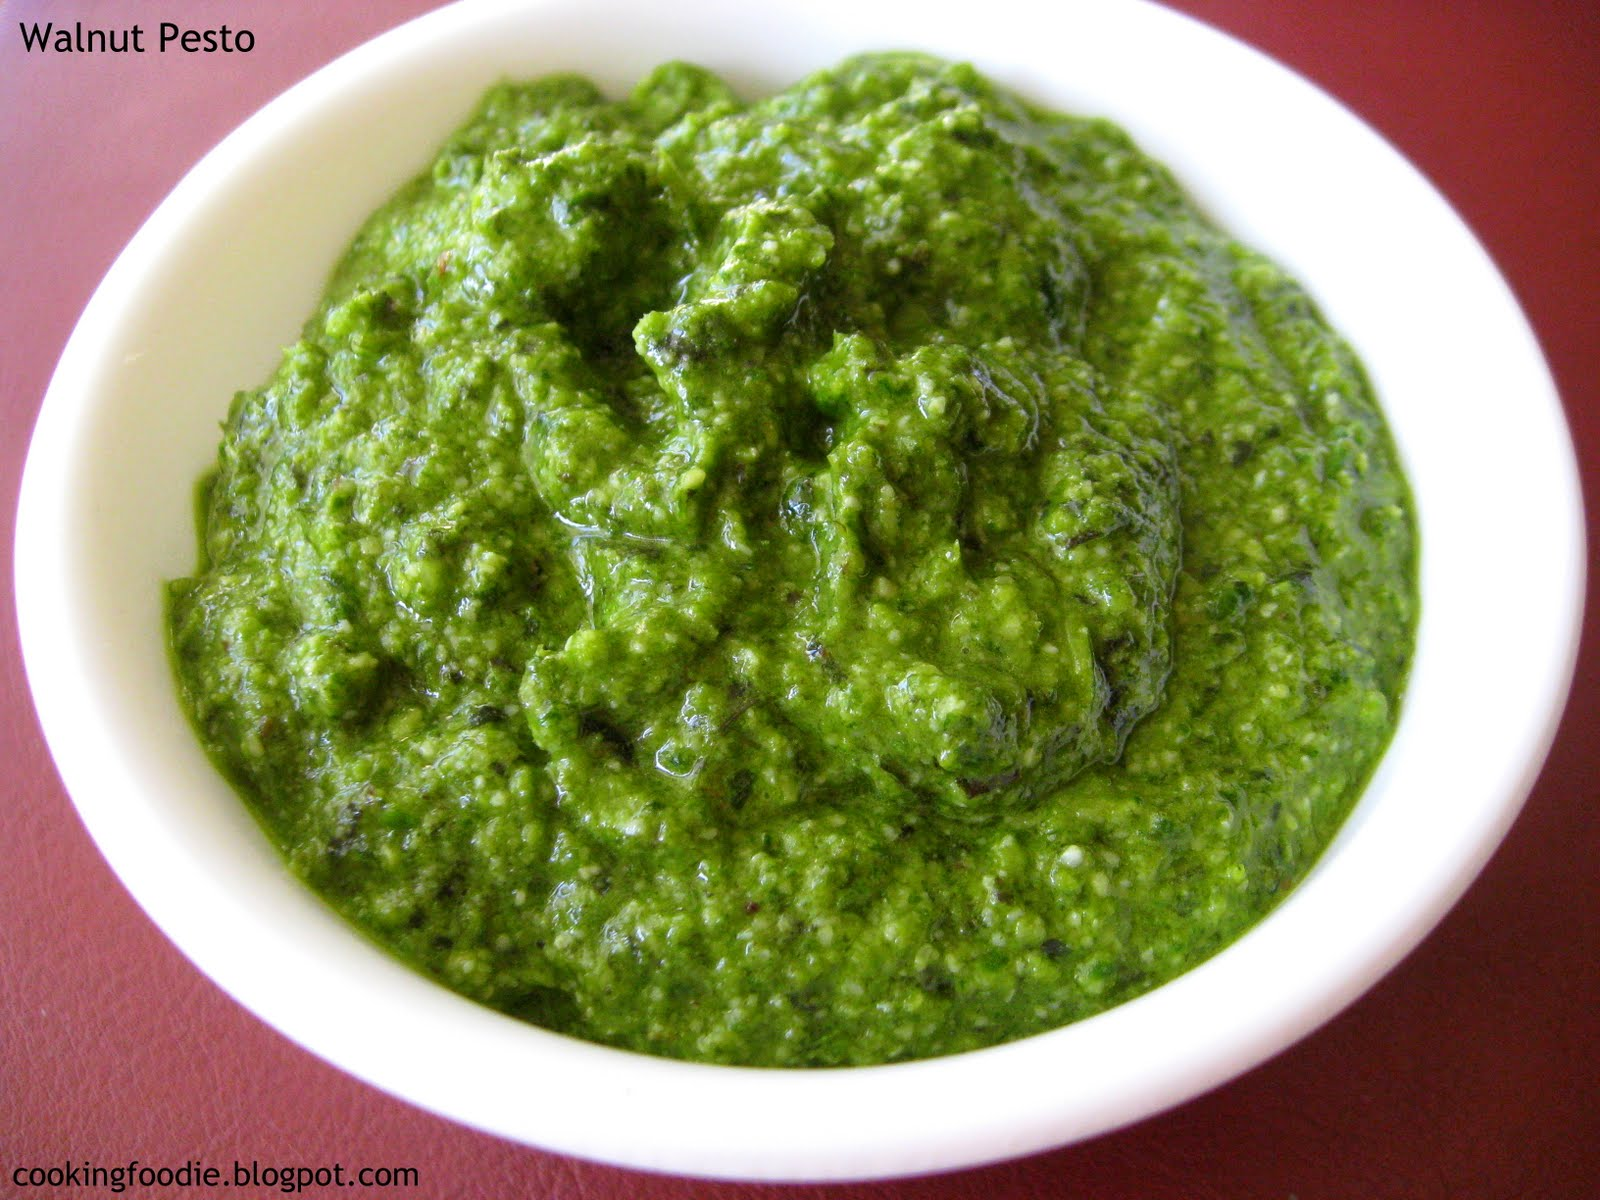 365 days of Eating: Walnut Pesto